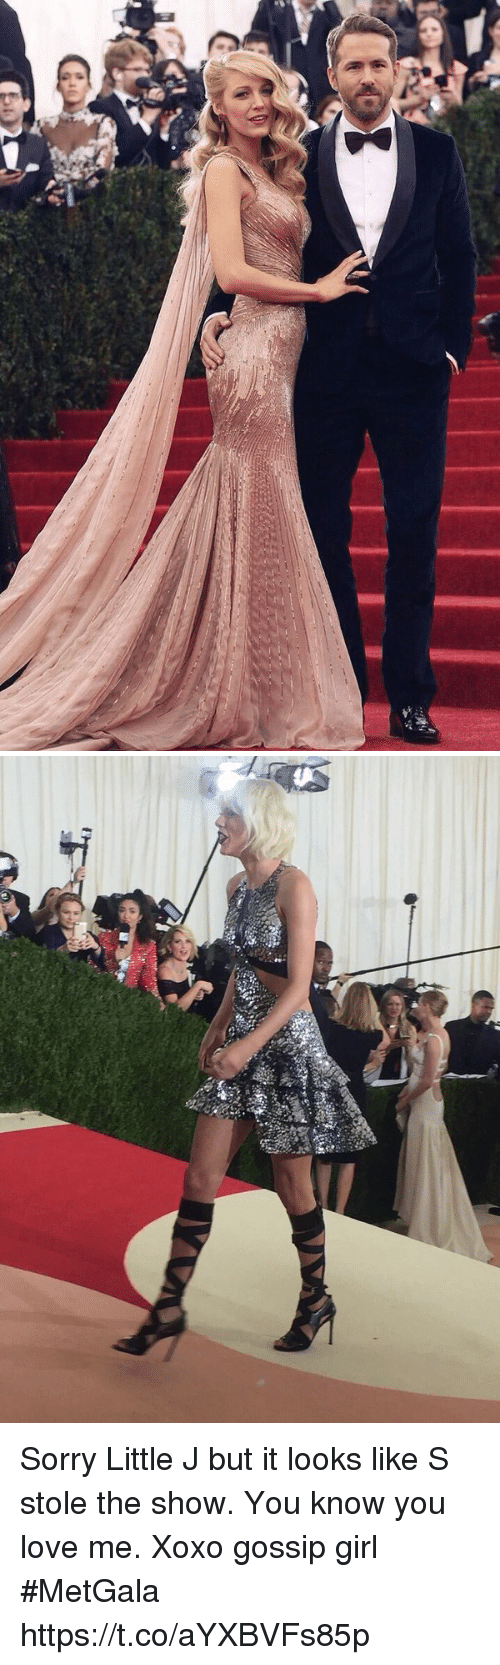 stole the show: 6- Sorry Little J but it looks like S stole the show. You know you love me. Xoxo gossip girl #MetGala https://t.co/aYXBVFs85p